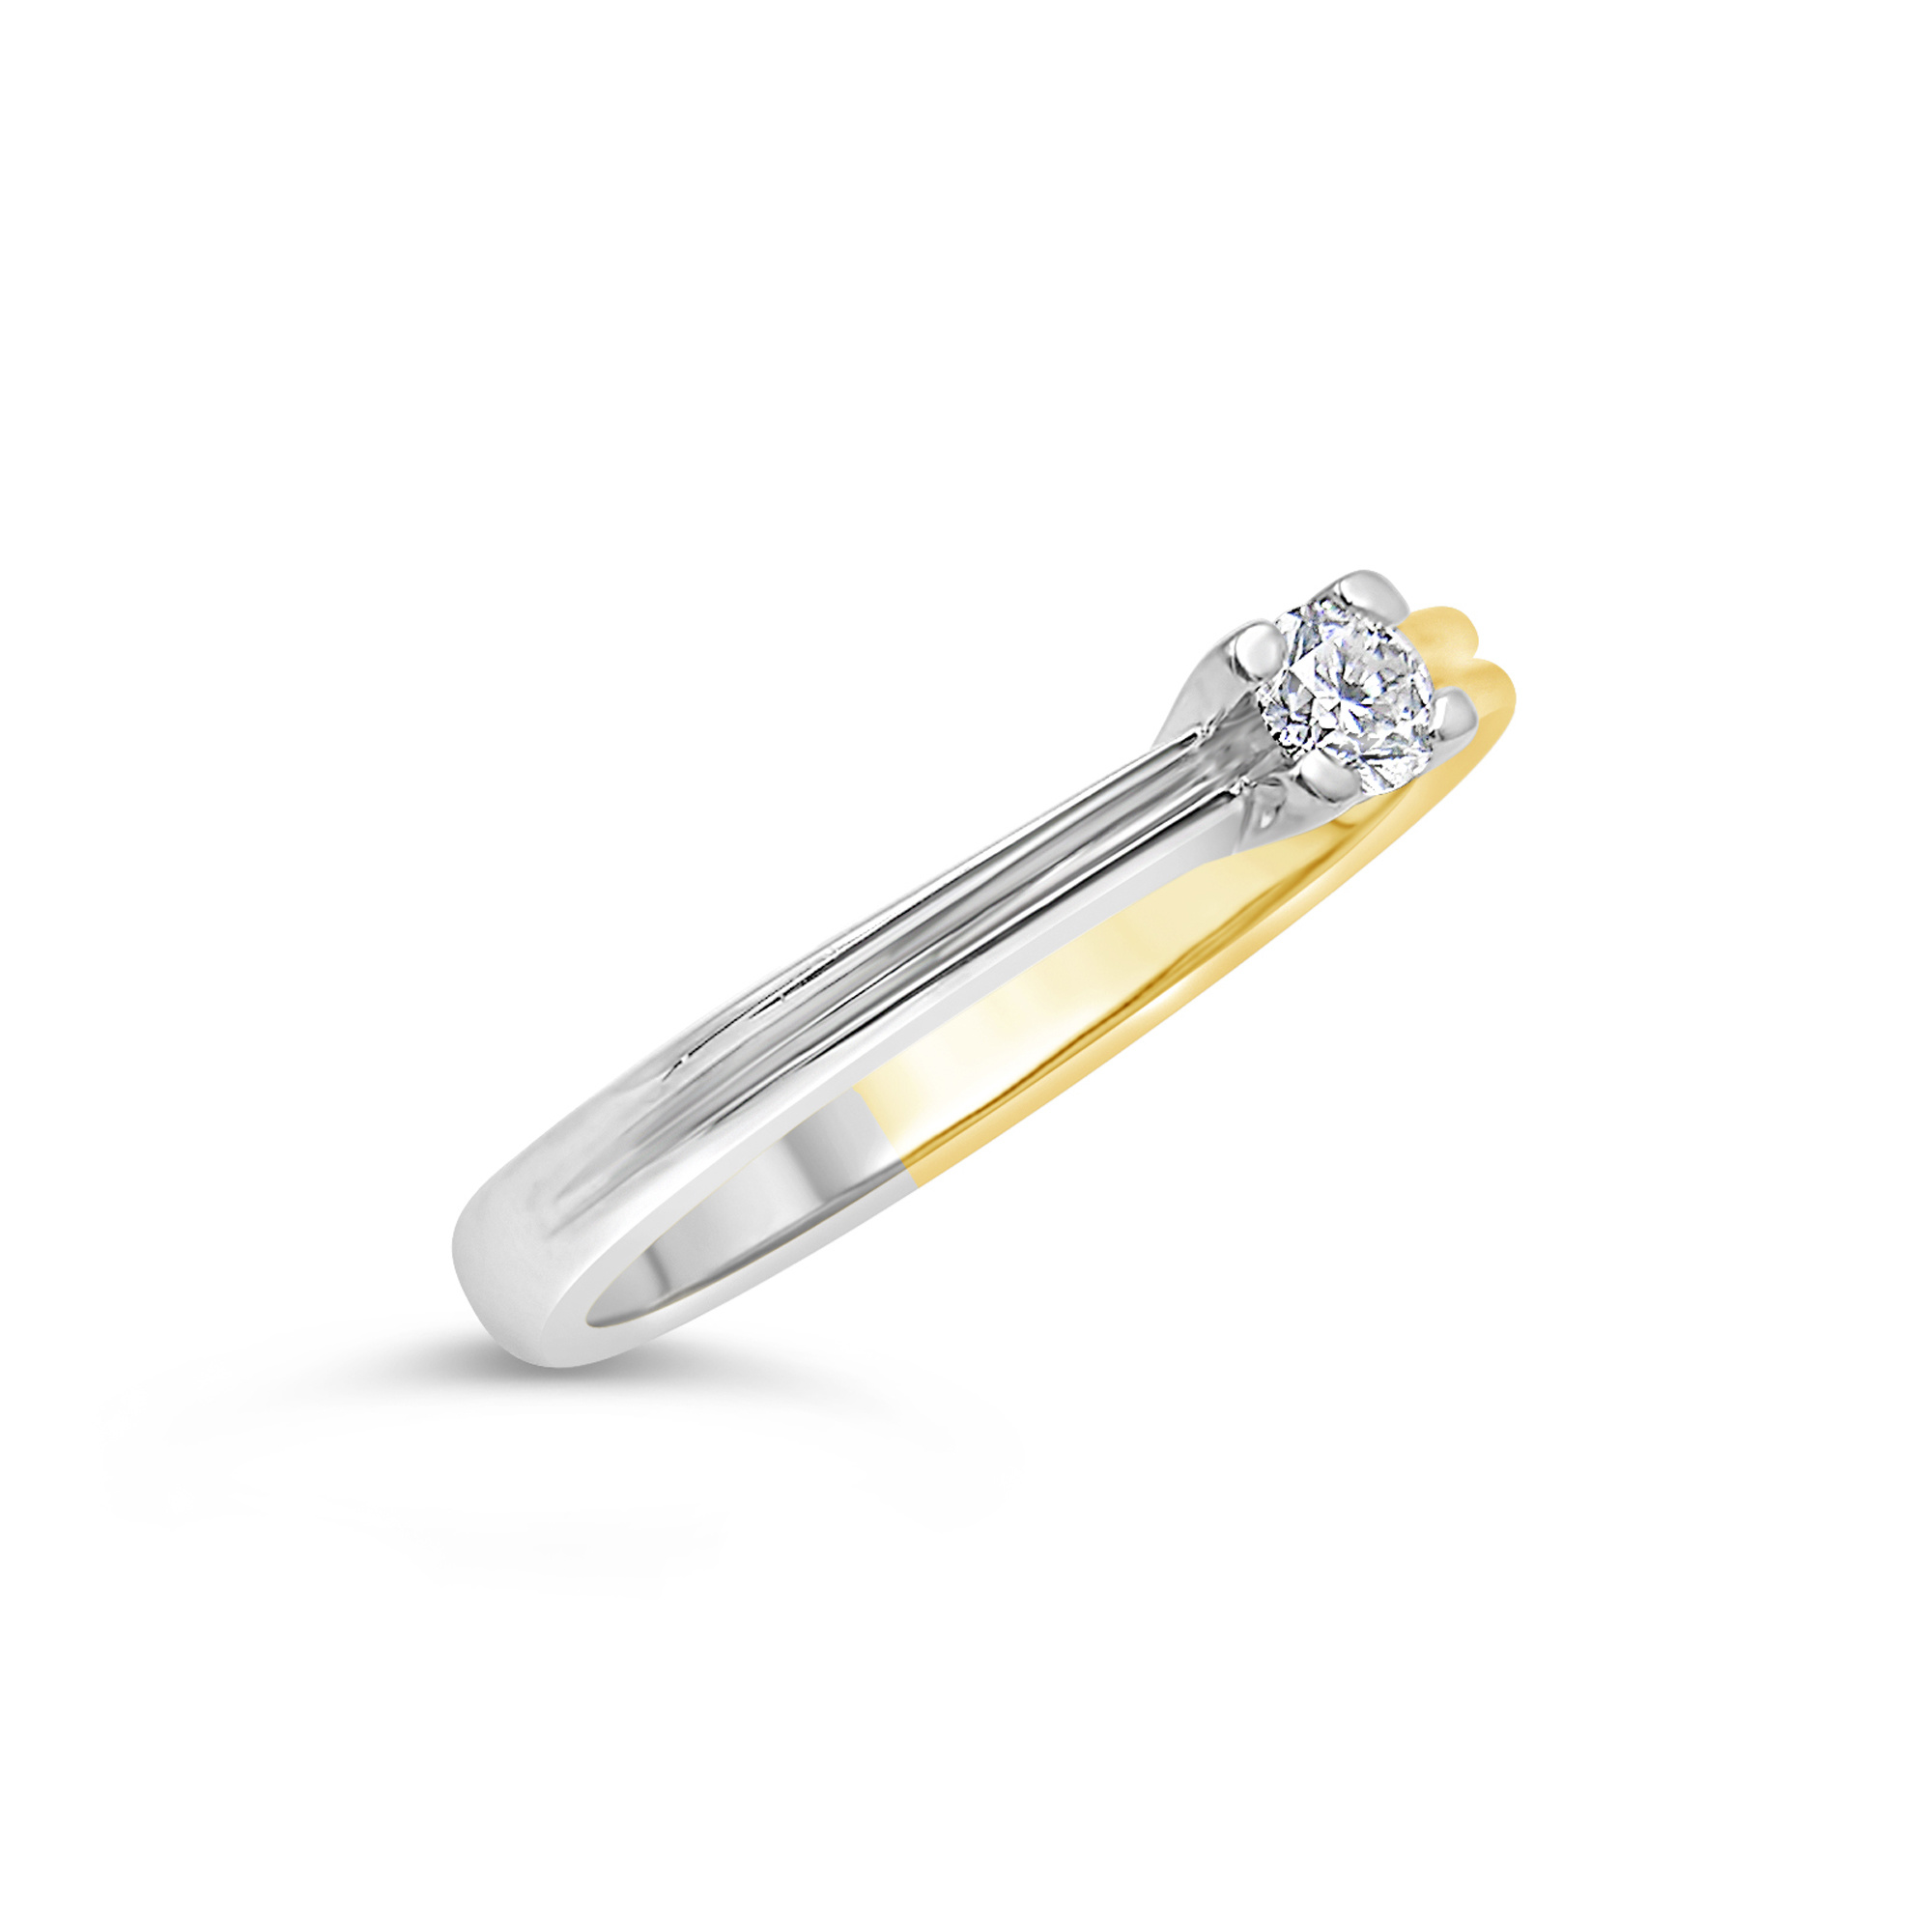 18kt yellow and white gold engagement ring with 0.15 ct diamond